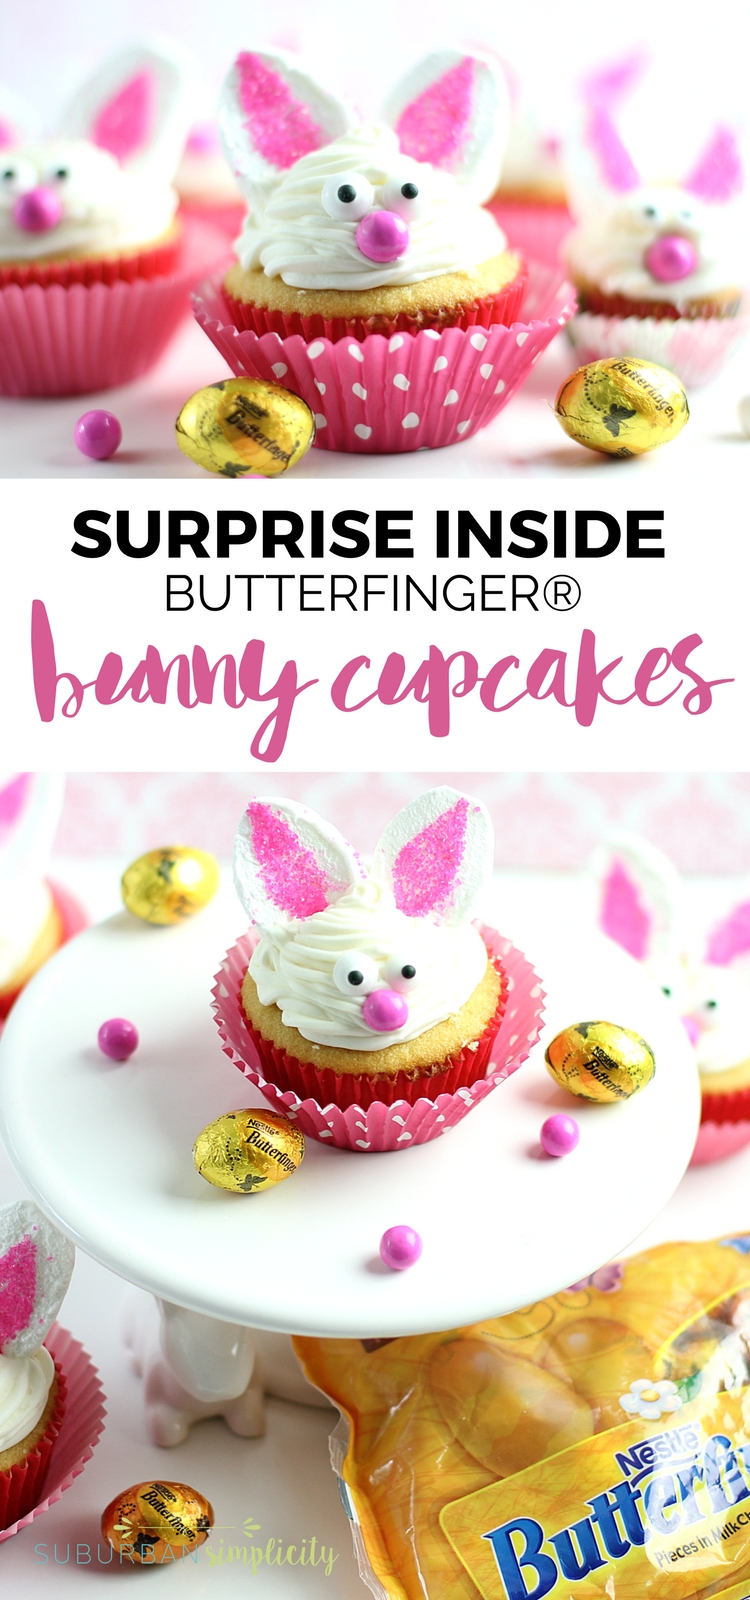 Bunny Cupcakes with a BUTTERFINGER® Surprise Inside are what you need to make this Easter! Adorable, easy and fun and the perfect dessert idea for any spring party or gathering. Plus, there's a yummy surprise waiting inside! #cupcakes #Easterdesserts #springdesserts